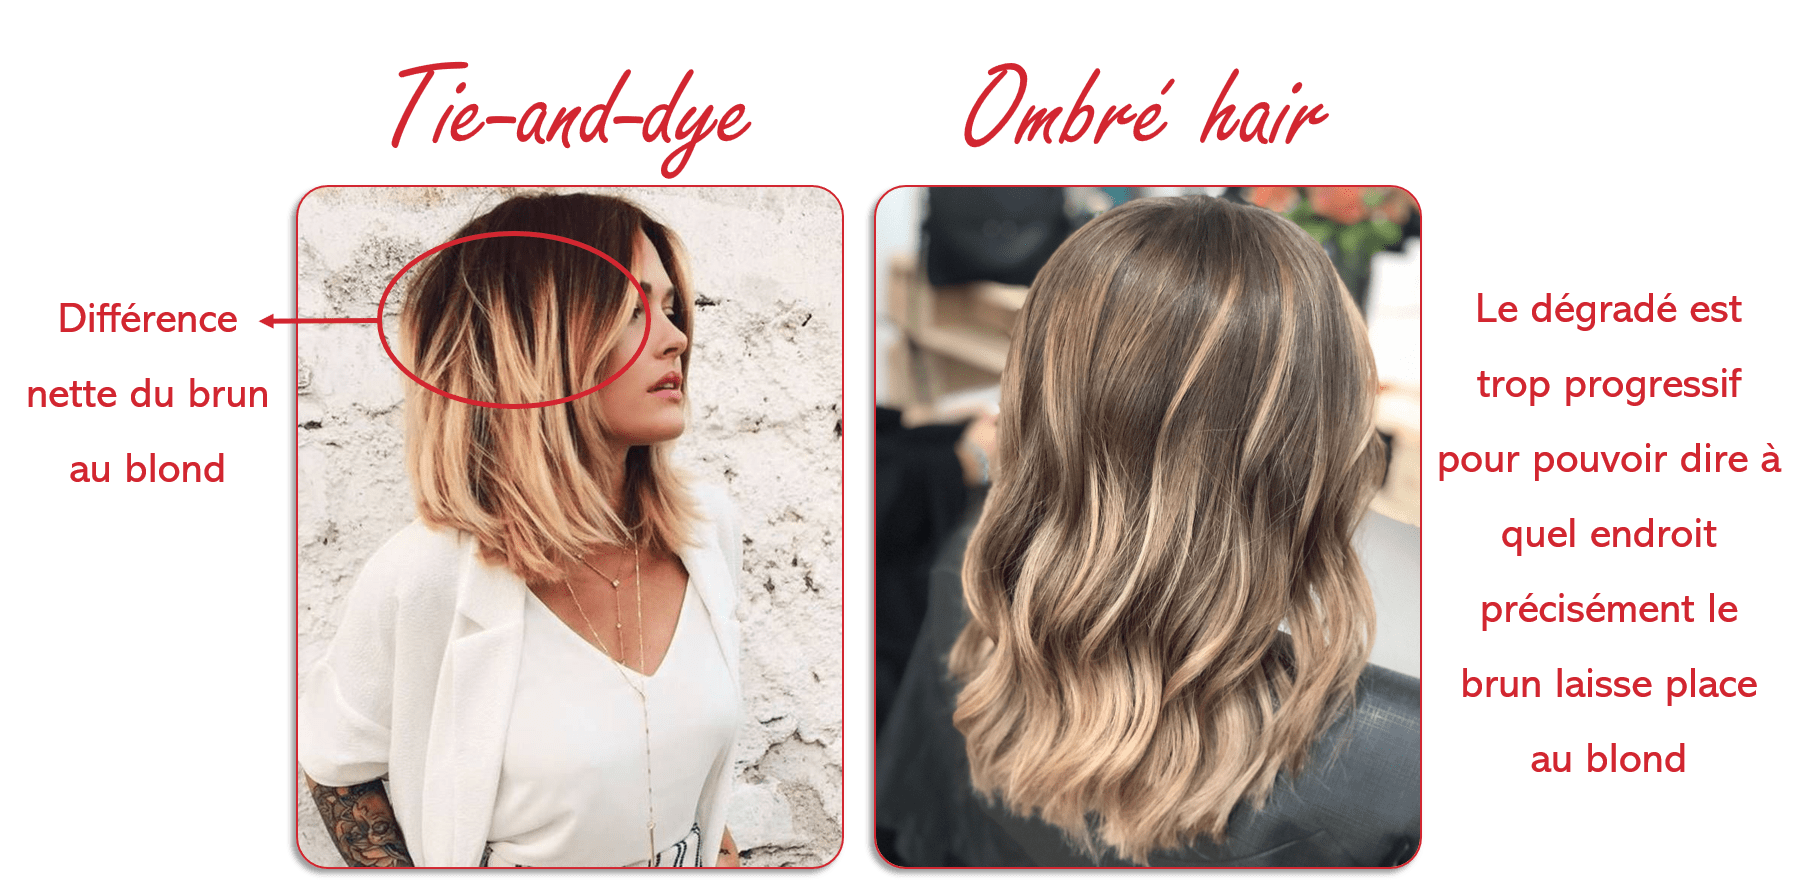 Ombré hair contre Tie-and-dye